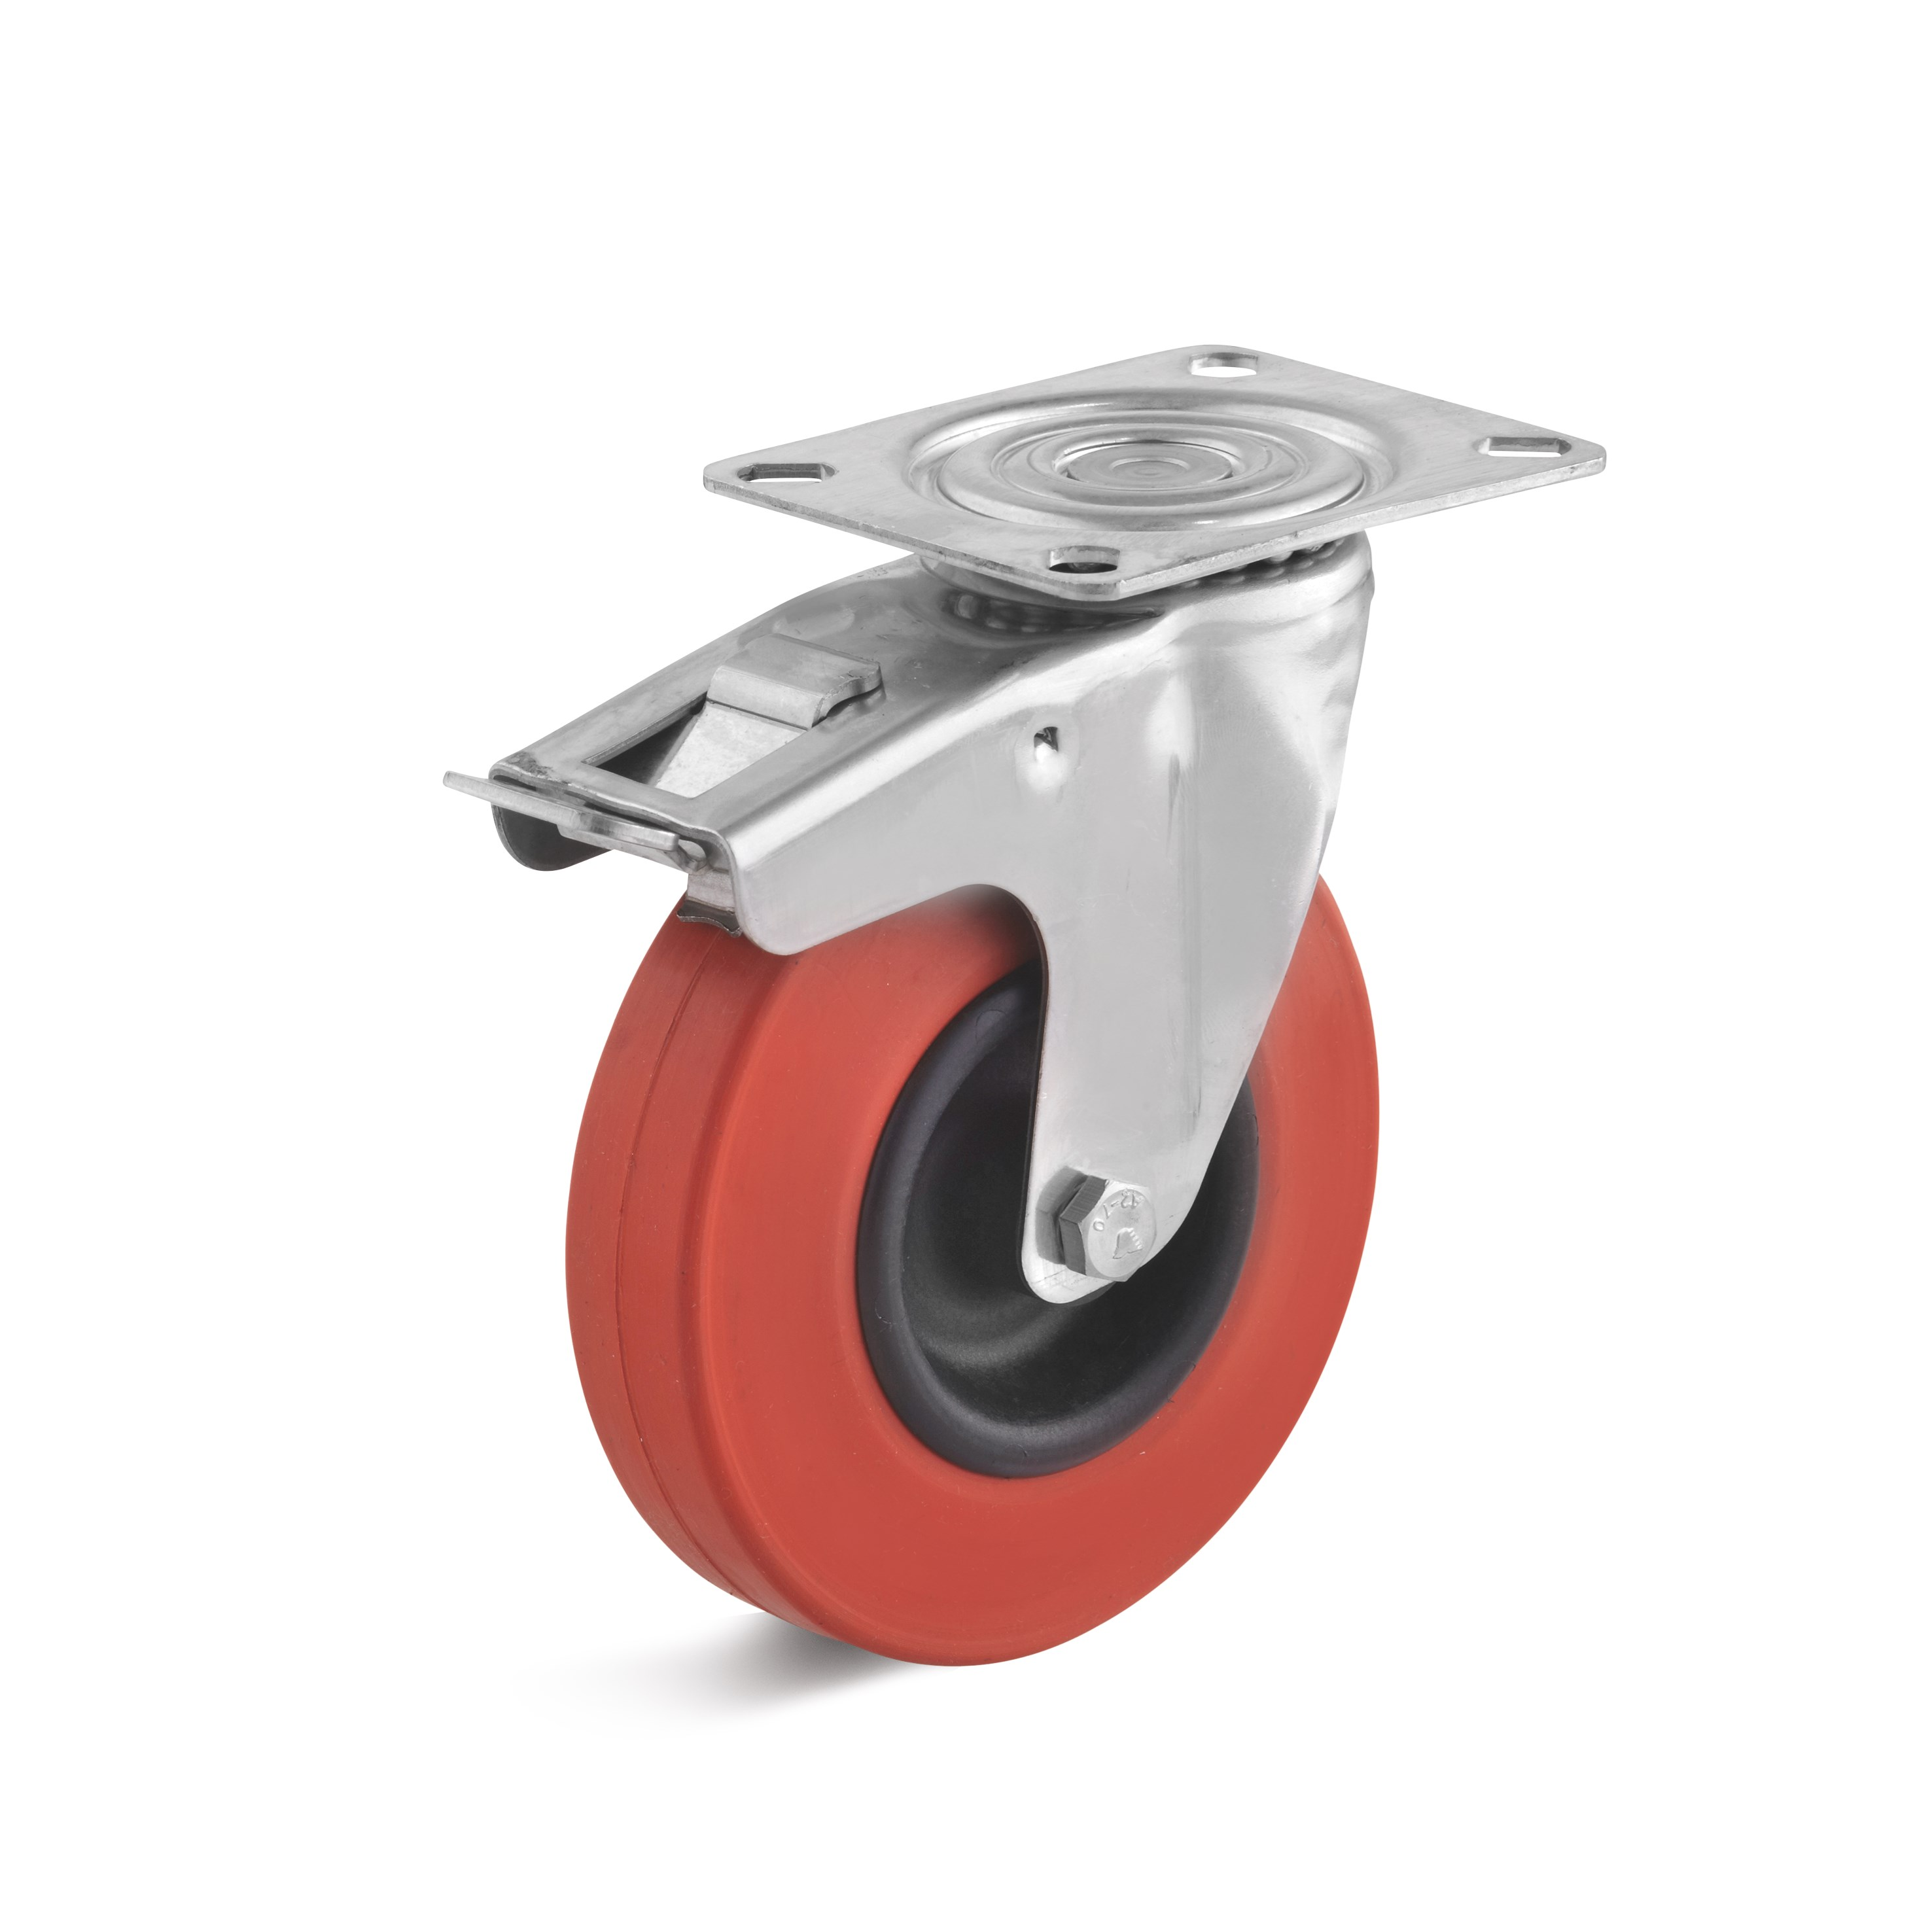 Stainless steel swivel castor with double stop and heat resistant rubber wheel